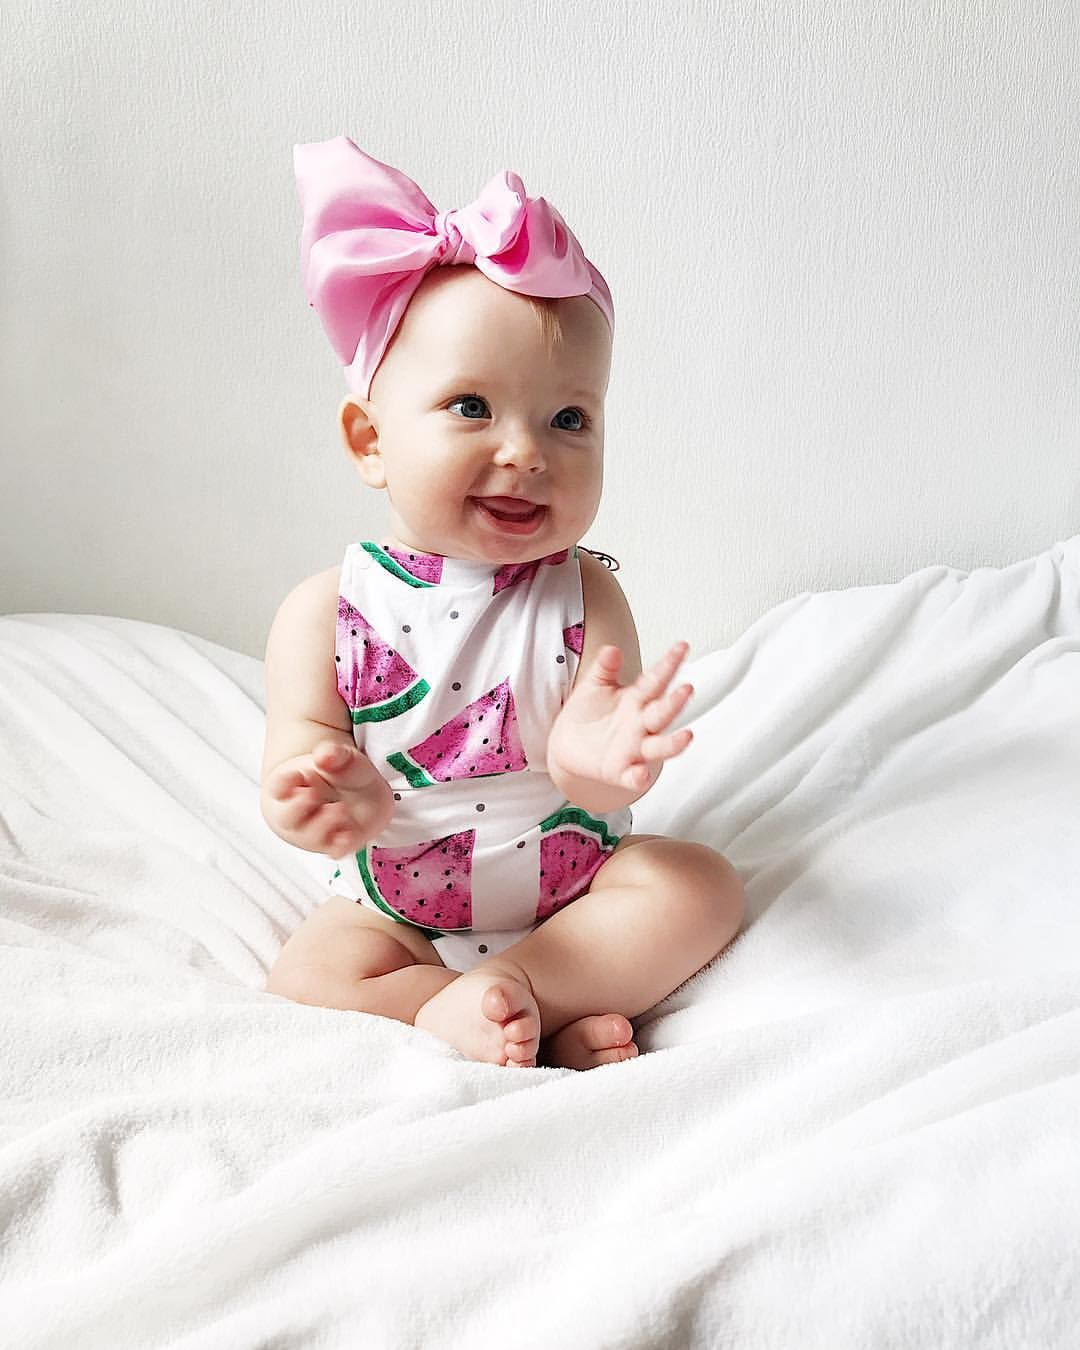 cute baby in a watermelon outfit and big pink bow sitting ... - photo#43